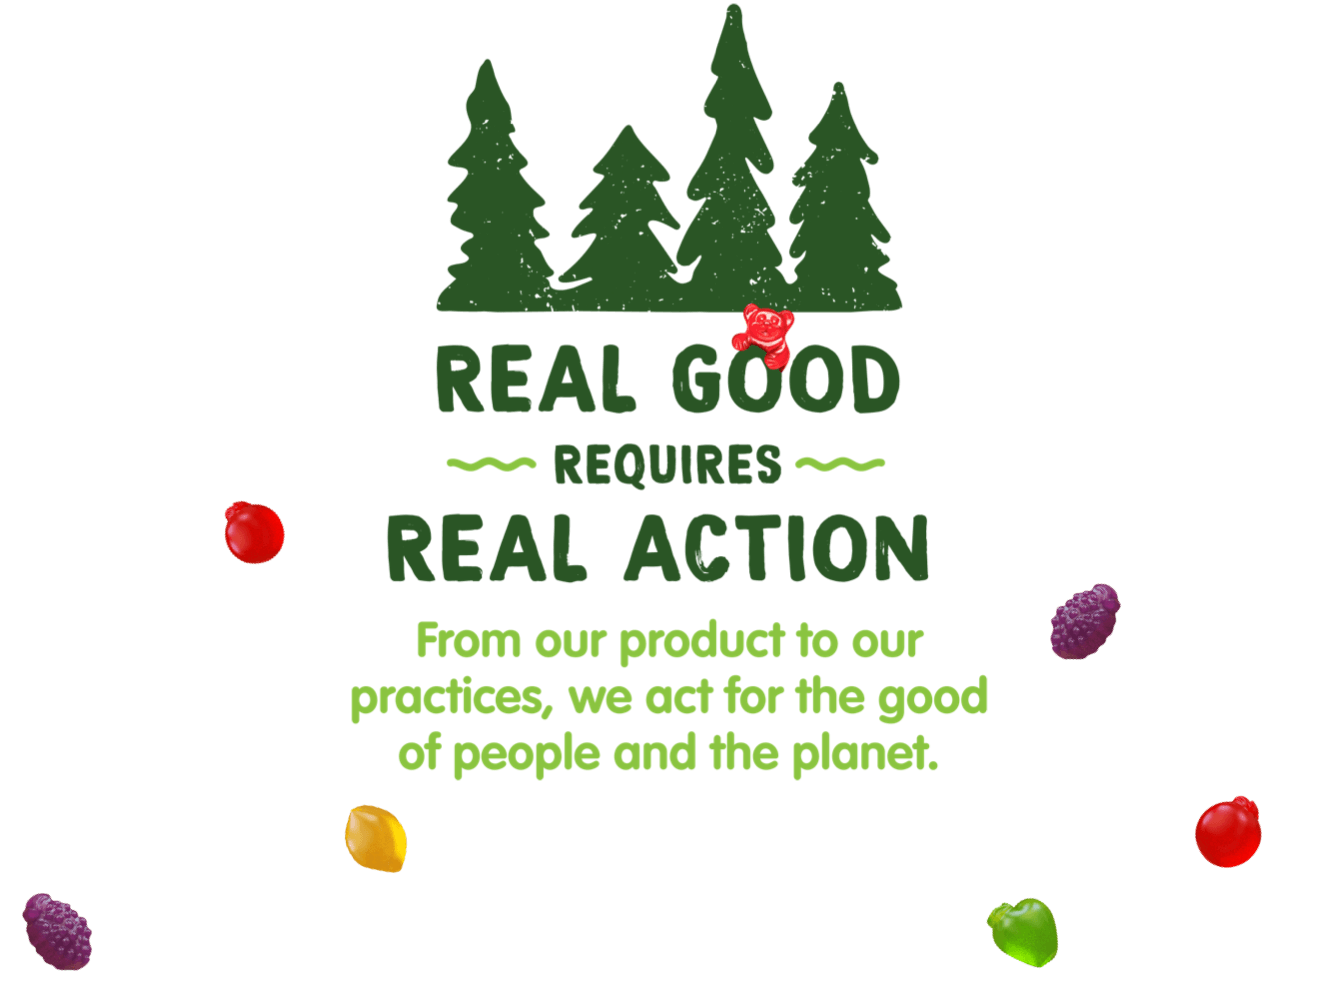 Real Good Requires Real Action. From our product to our practices, we act for the good of the people of the planet.